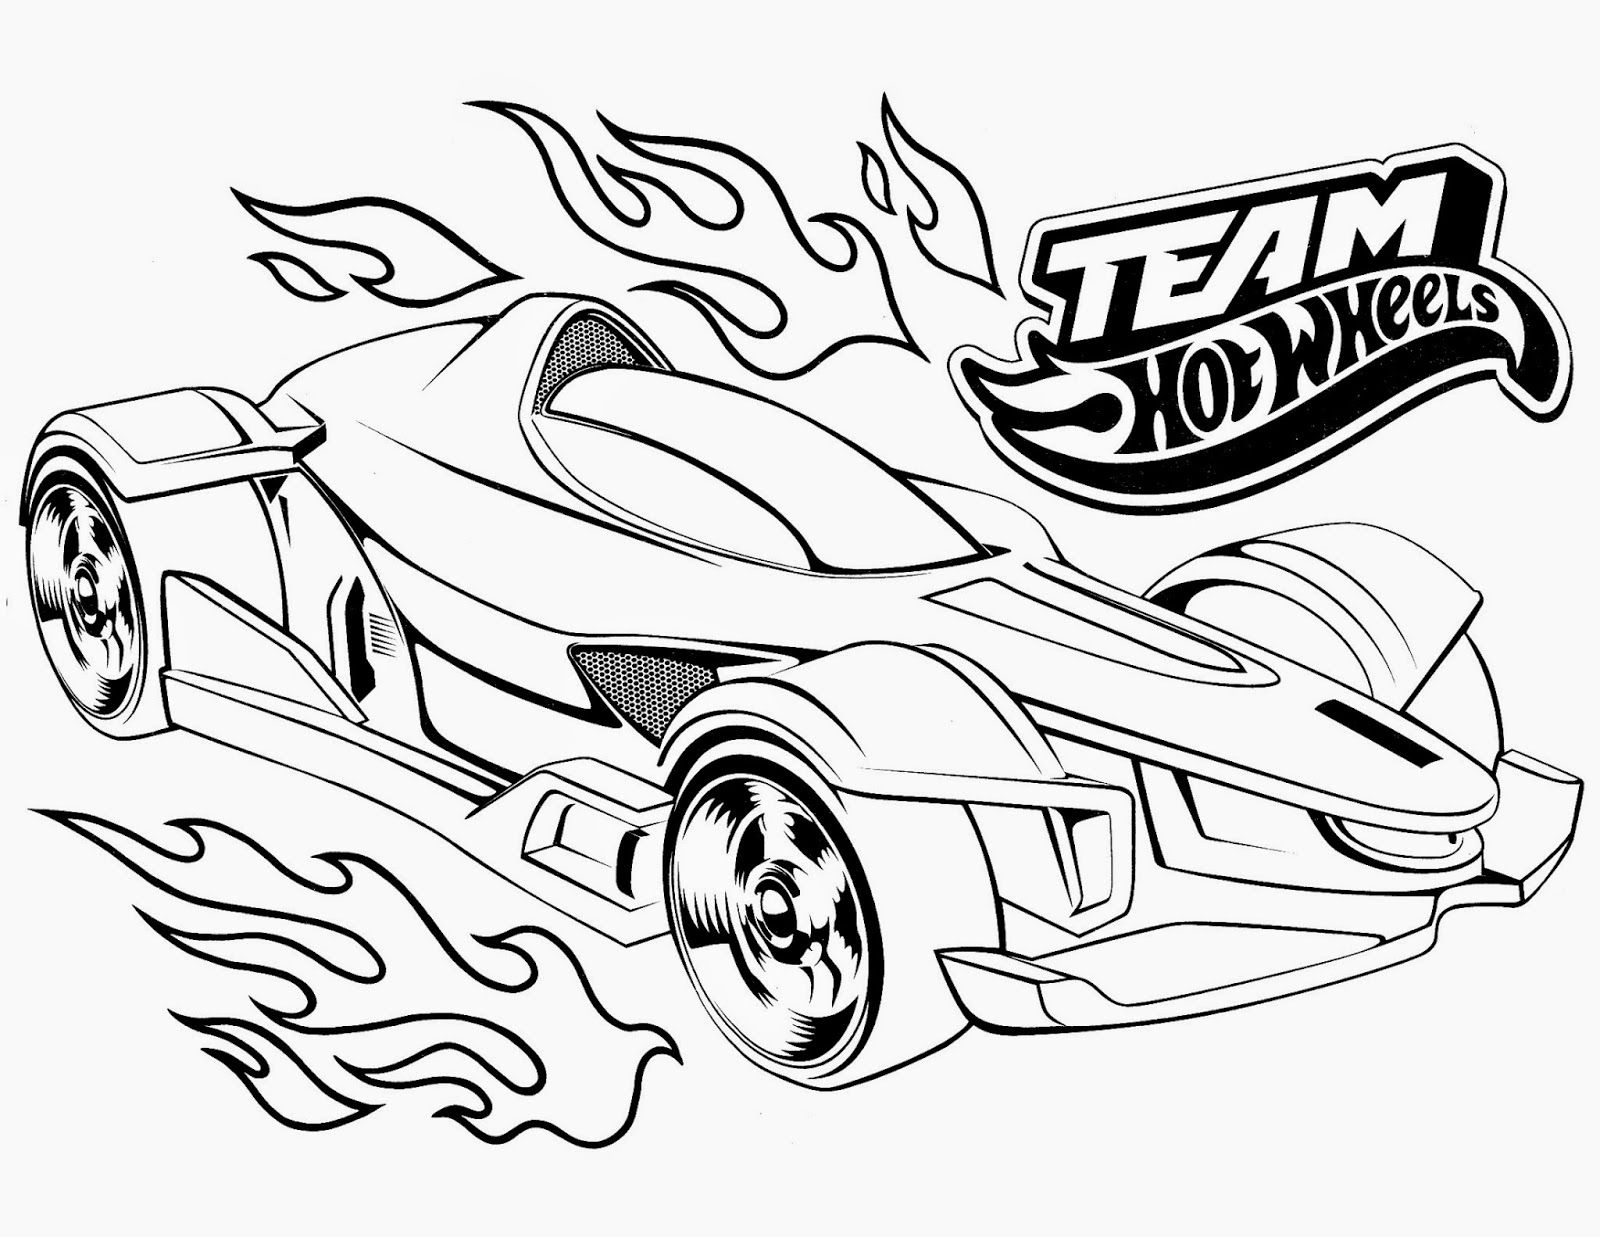 Coloring pages 4 wheeler - Hot Wheels Racing League Hot Wheels Coloring Pages Set 5